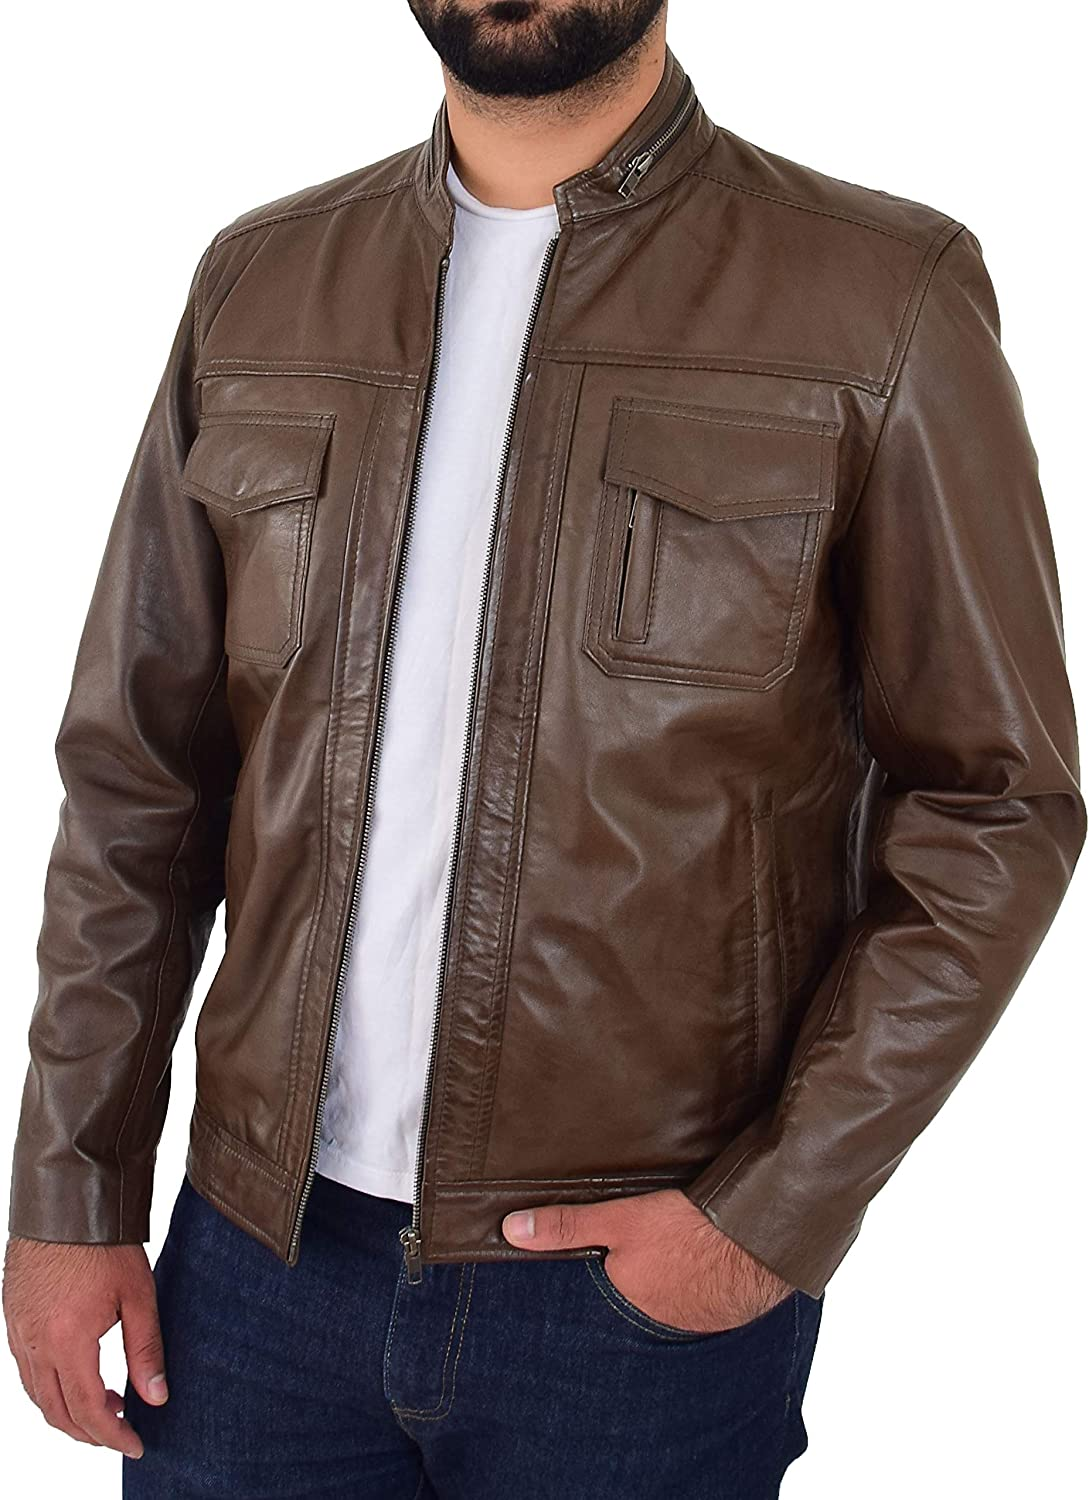 Biker Leather Jacket For Mens Timber Soft Nappa Fitted Standing Collar Zip Fasten Tats